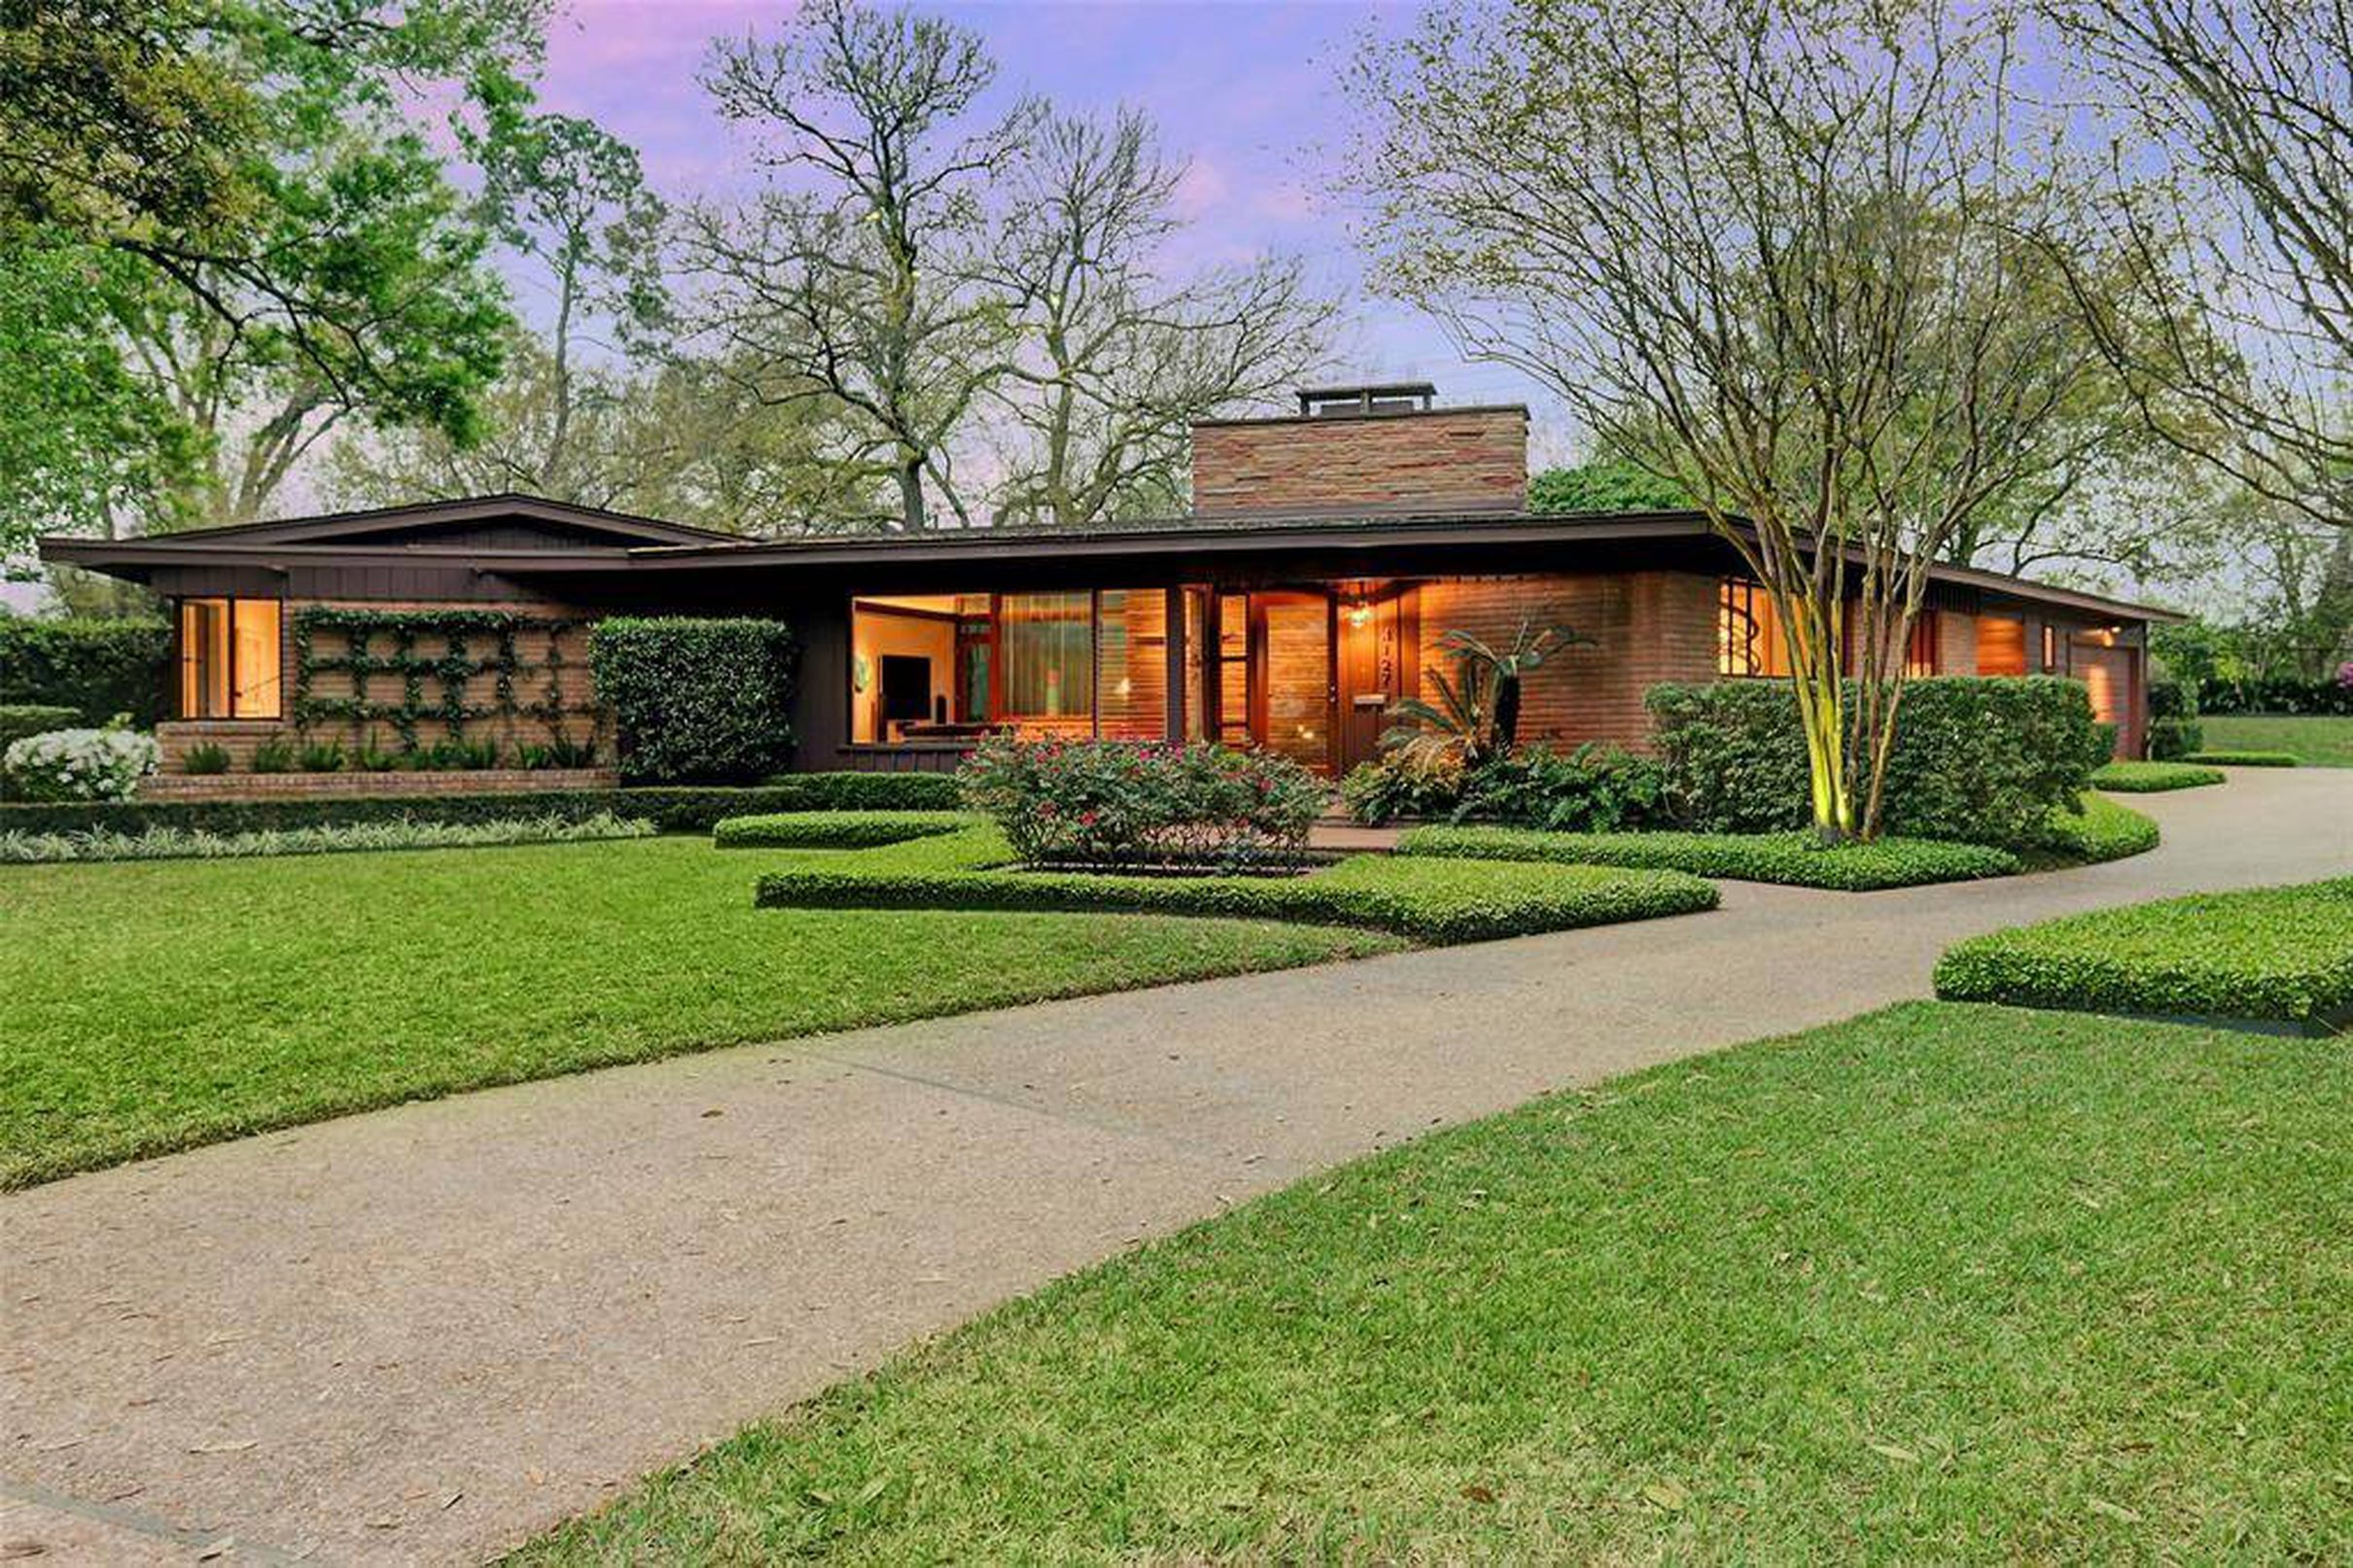 Updated Midcentury Home With Backyard Oasis Wants 1 3m Mid